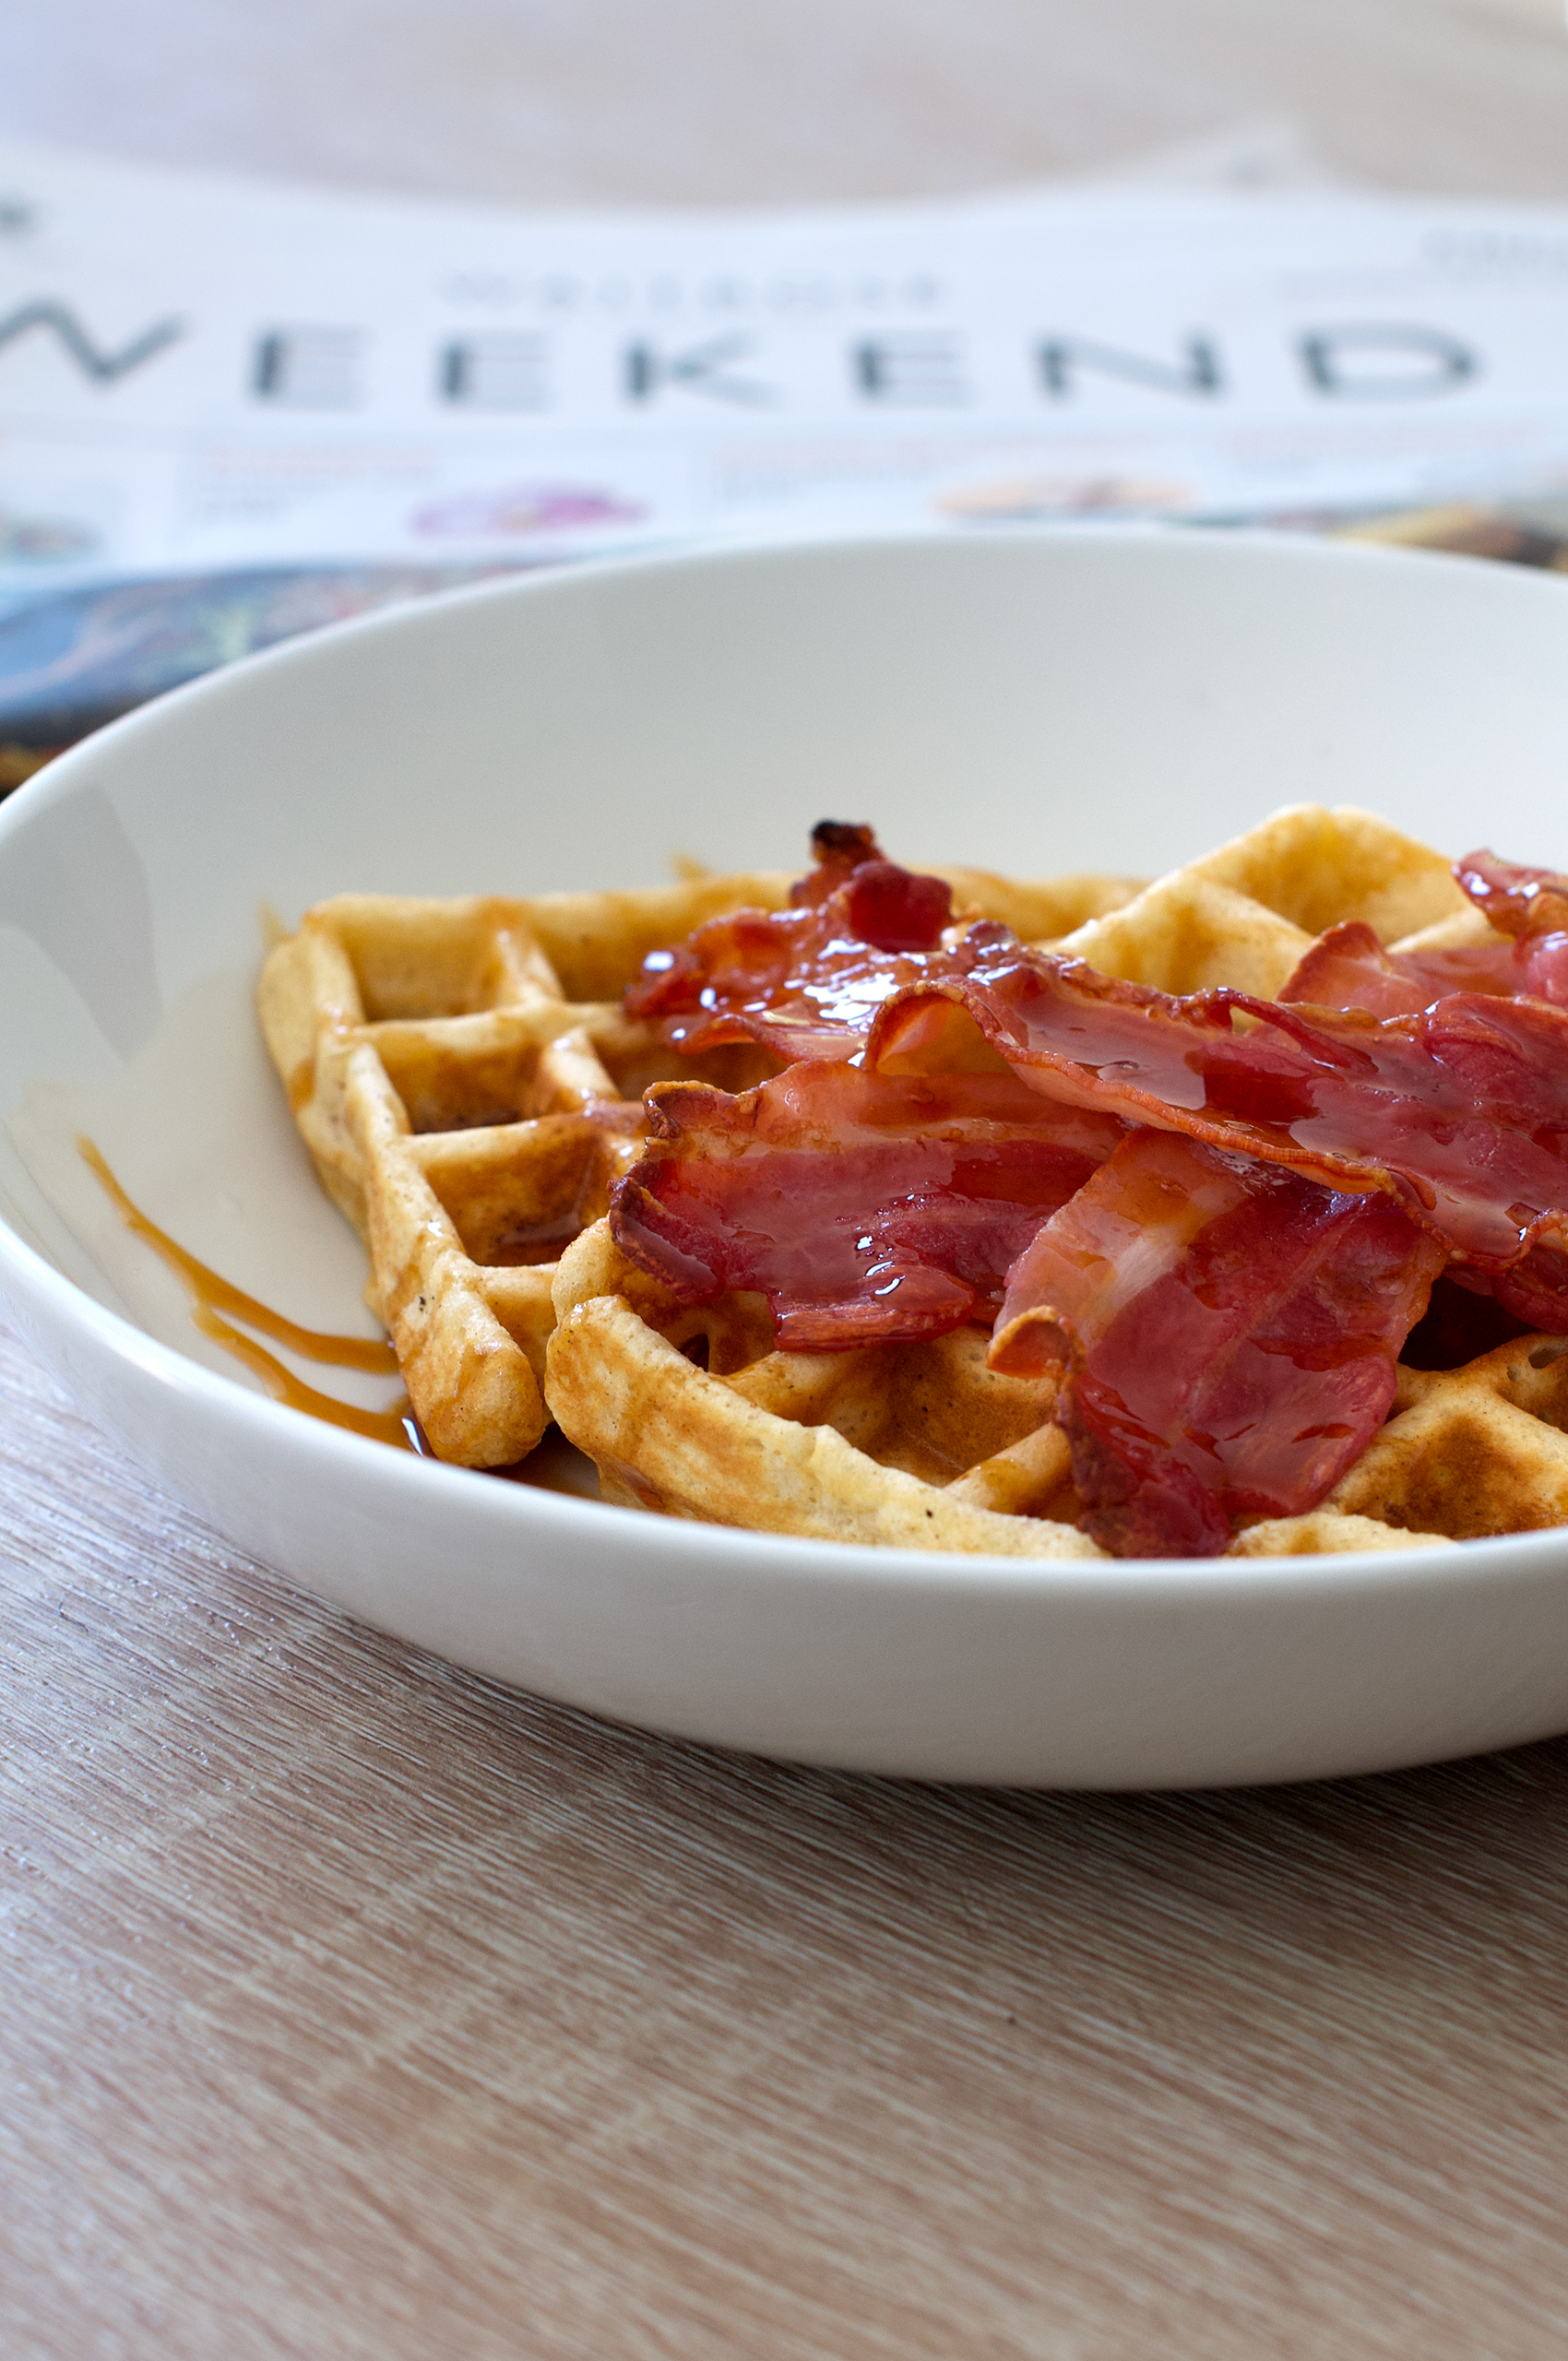 Recipe for breakfast waffles with crispy bacon and syrup